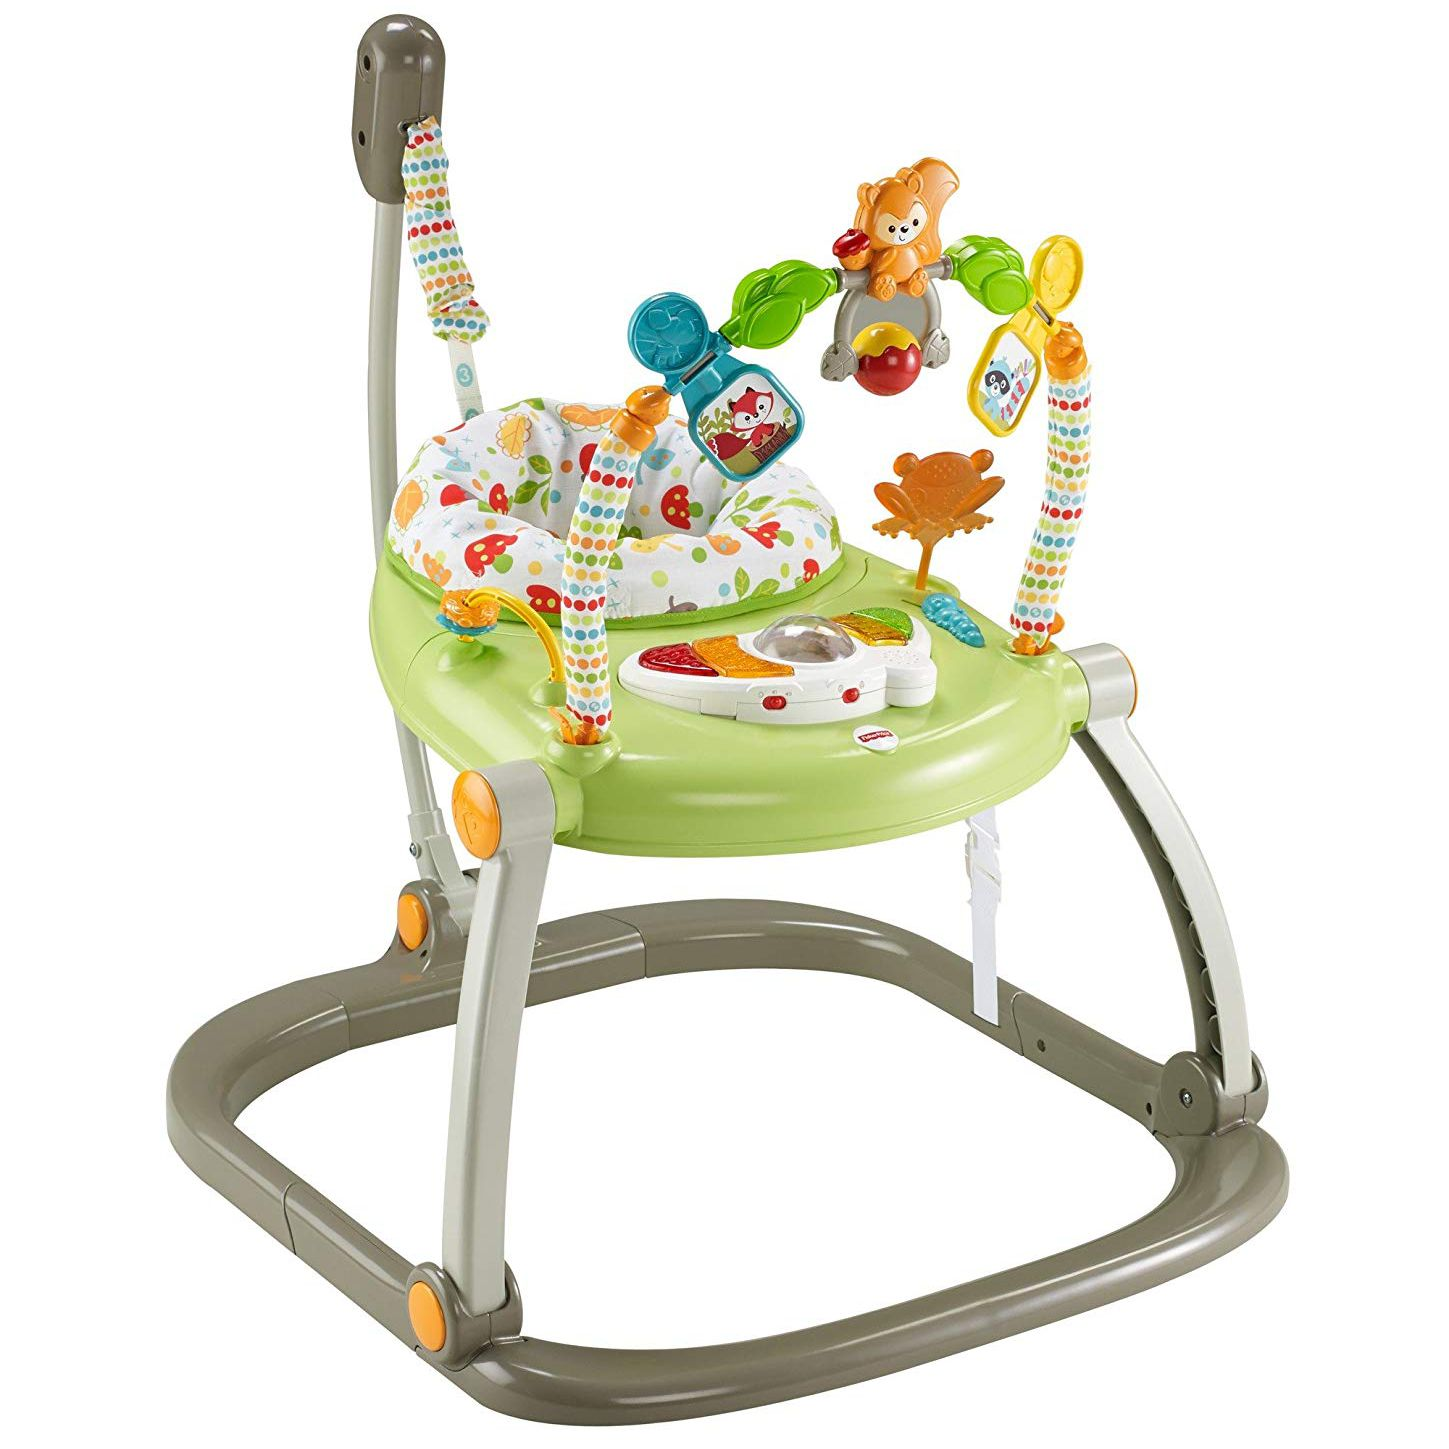 Official Website half off luxuriant in design The 9 Best Baby Activity Centers of 2019